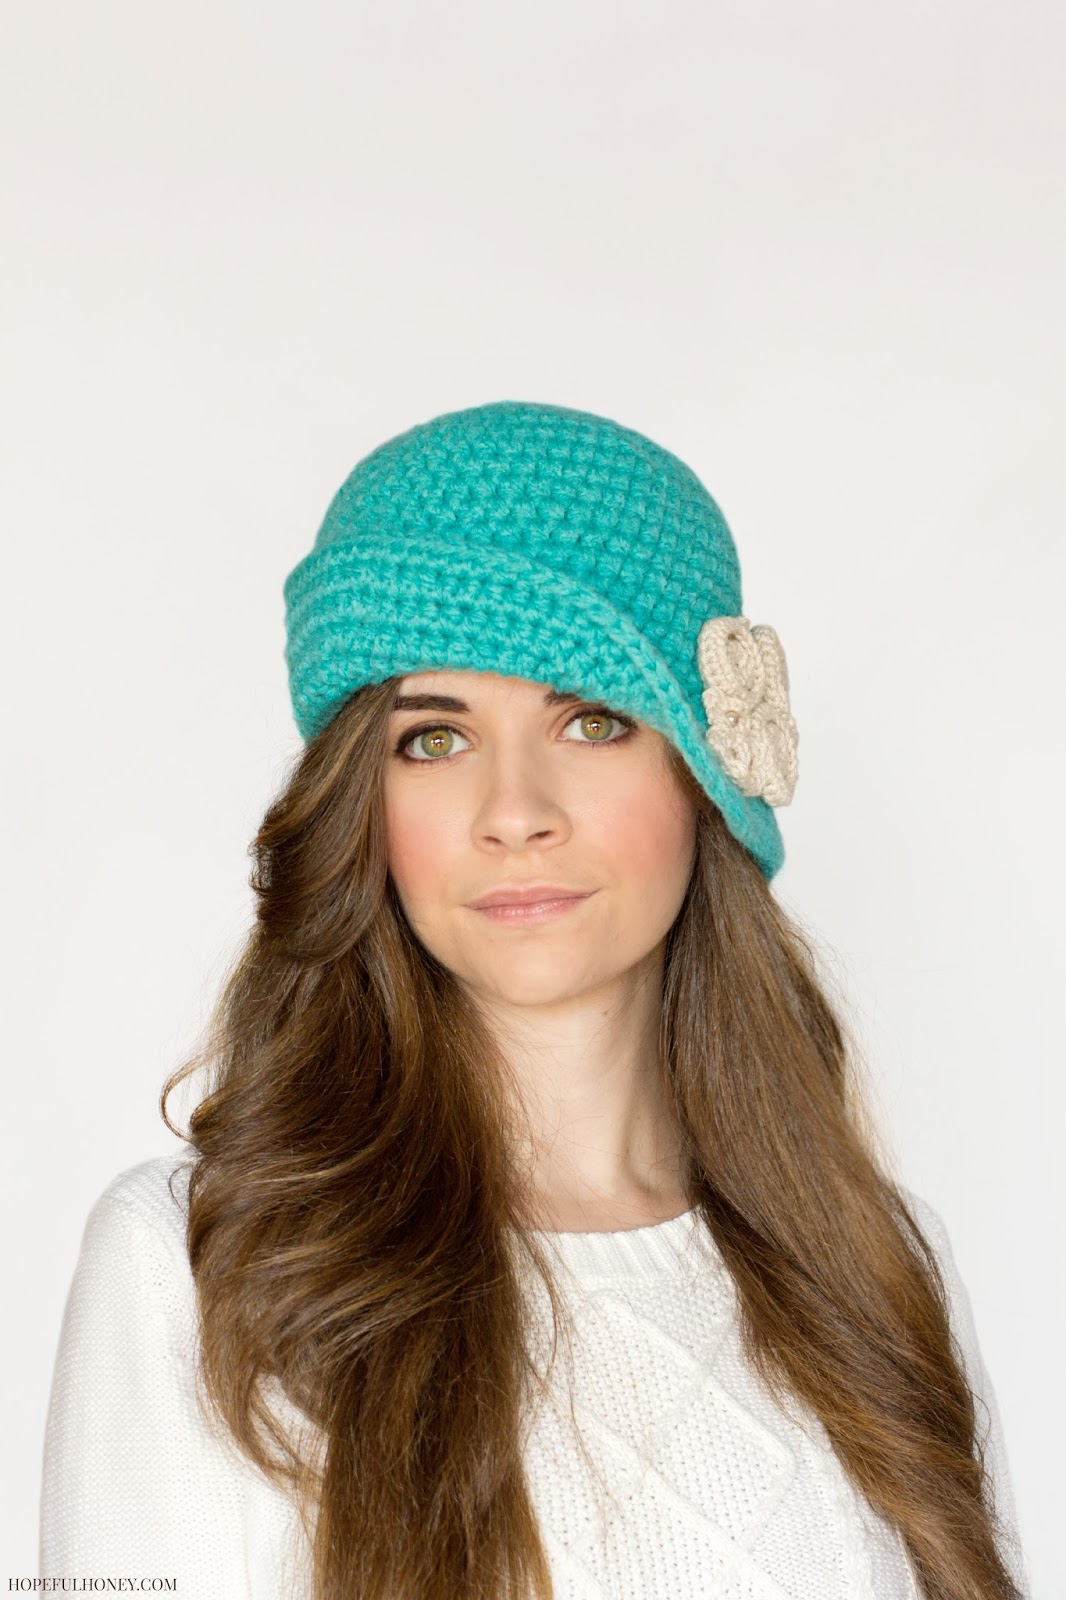 Crochet Hat Pattern Cloche : Hopeful Honey Craft, Crochet, Create: Charleston Cloche ...